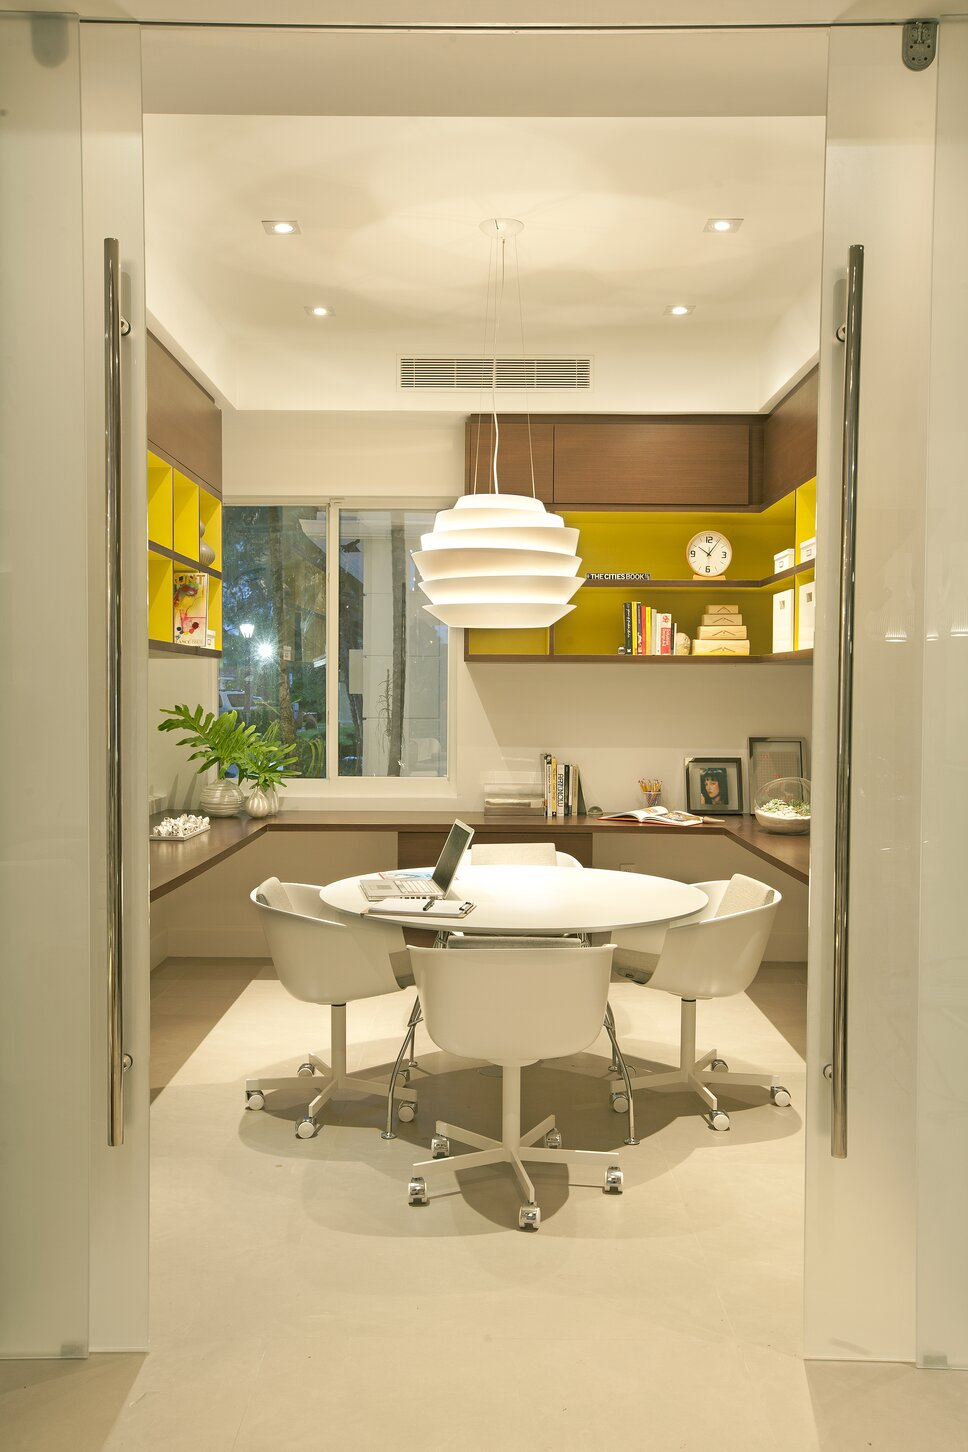 Residential interior design project in Miami, FL. Photos by Alexia Fodere. Modern Home Office design